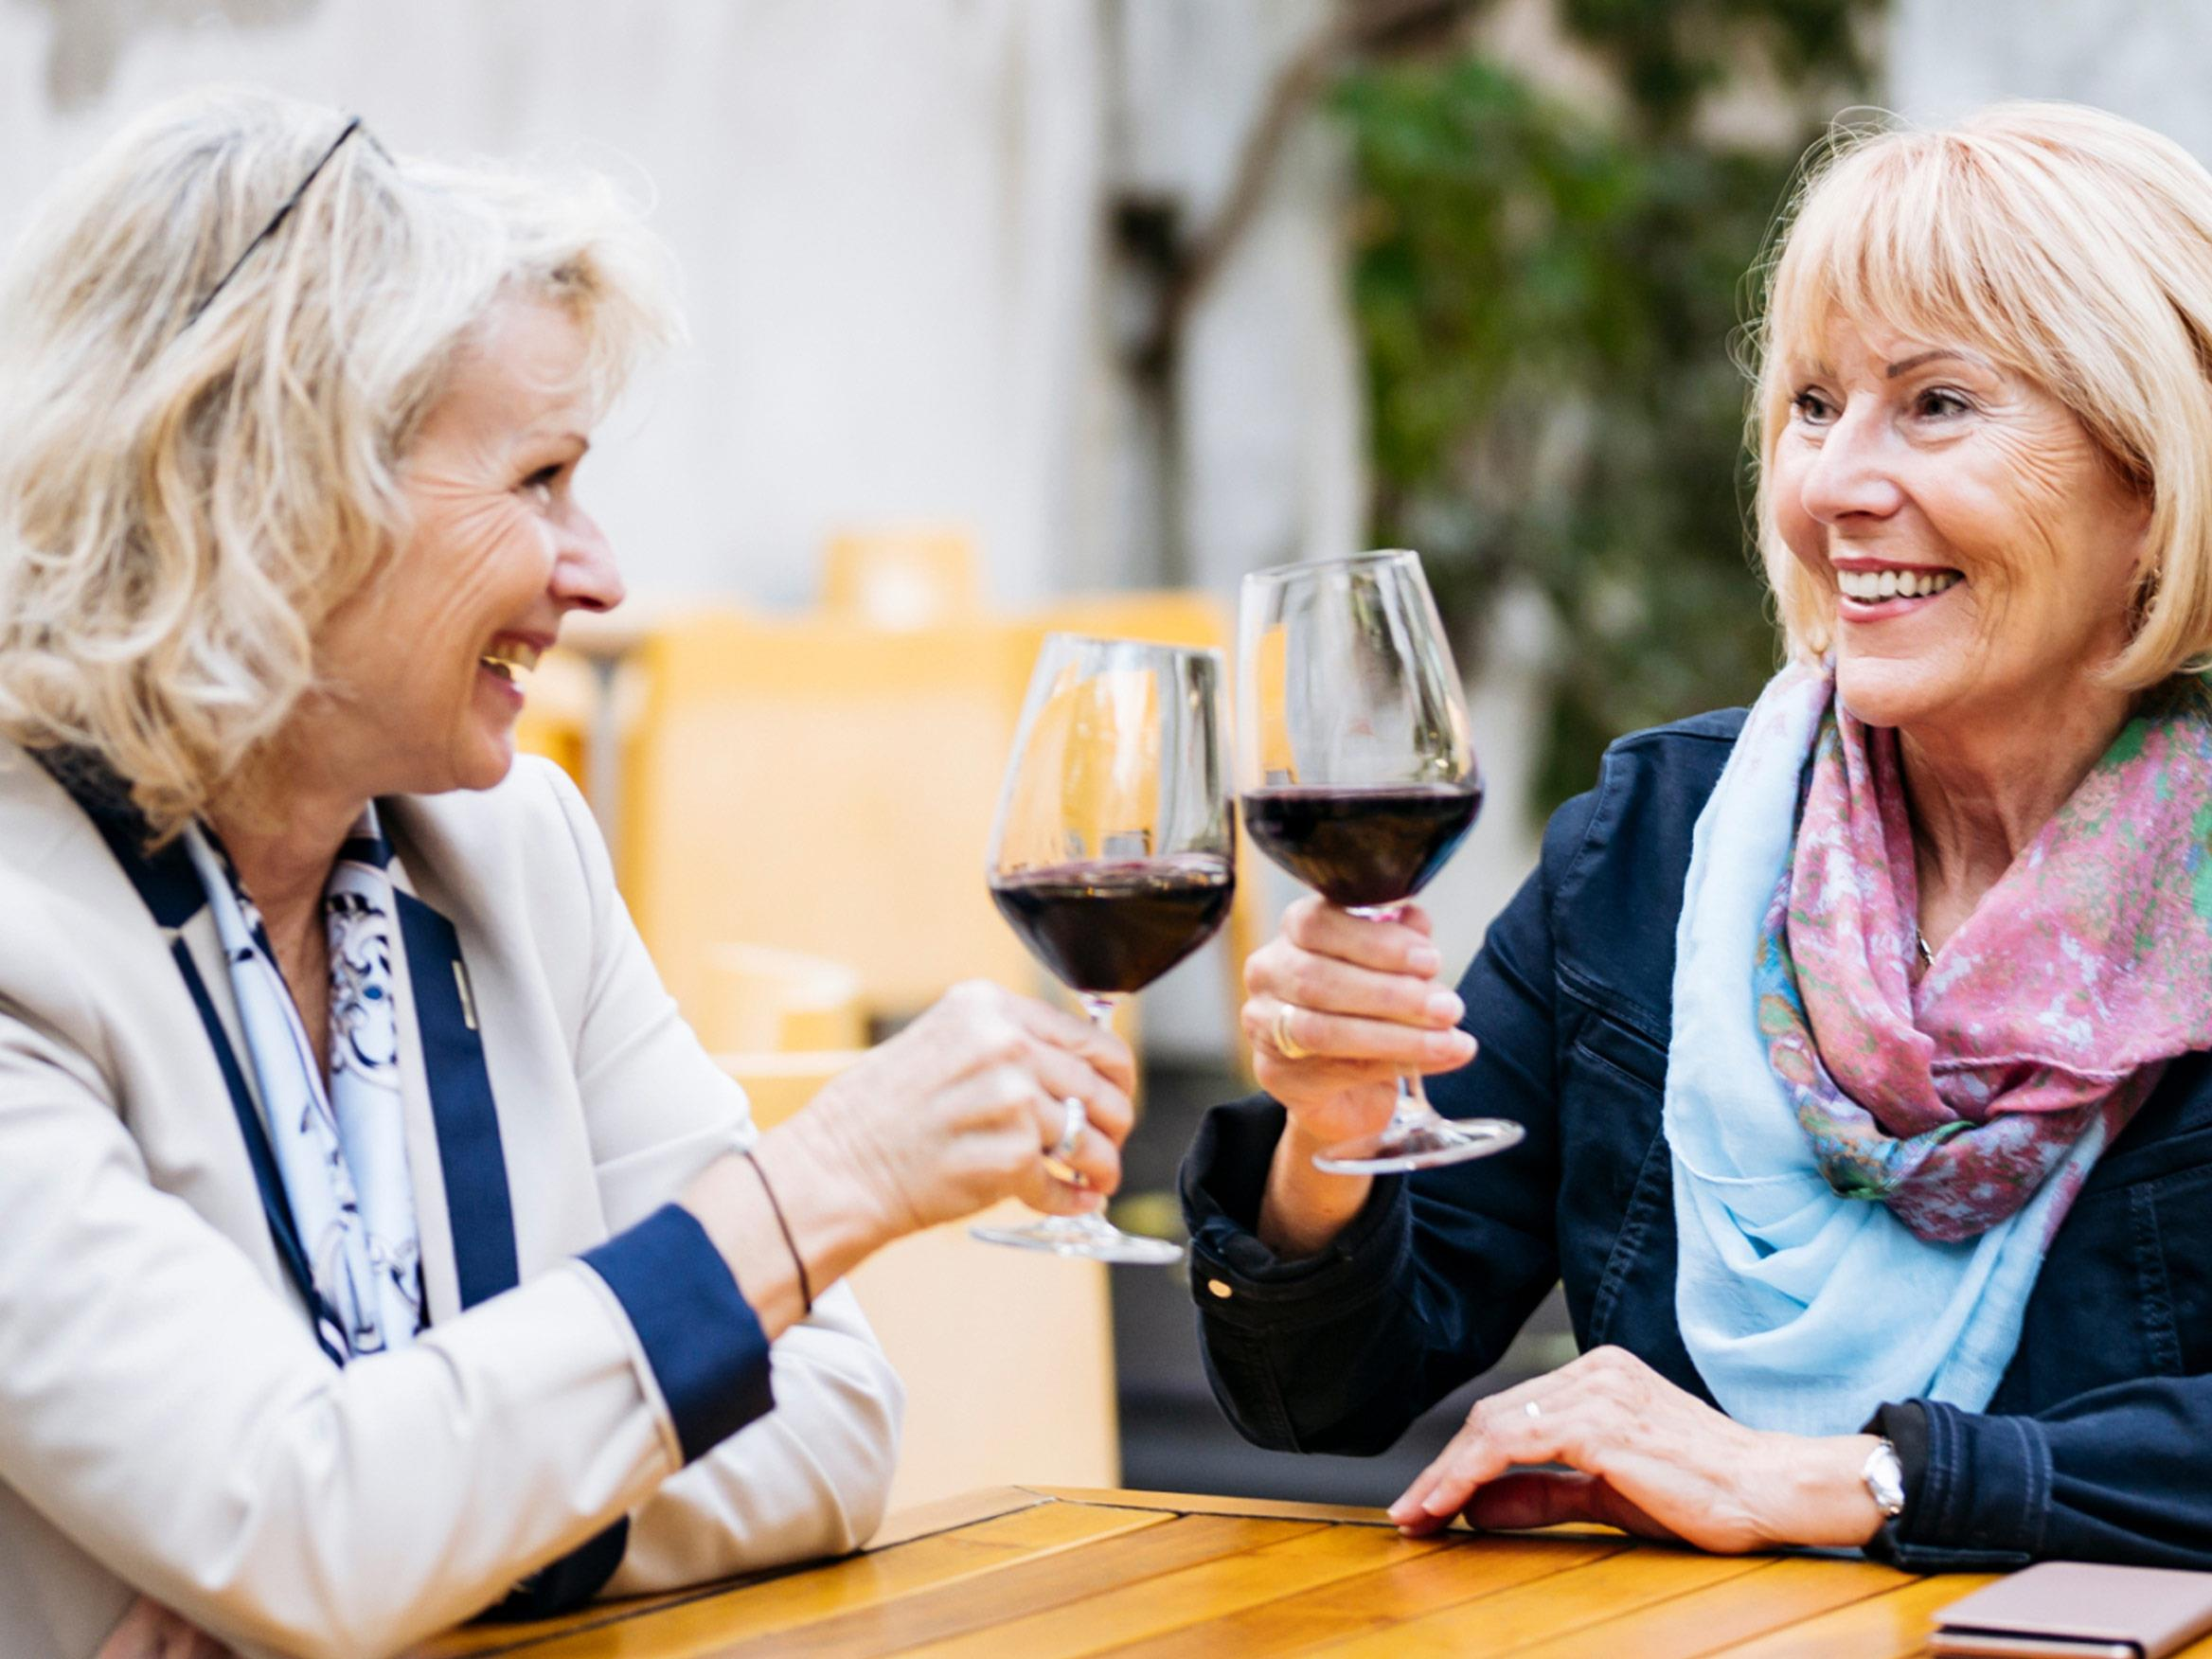 Our latest hearing aid with the most natural sound quality in a resturant - ReSound ONE